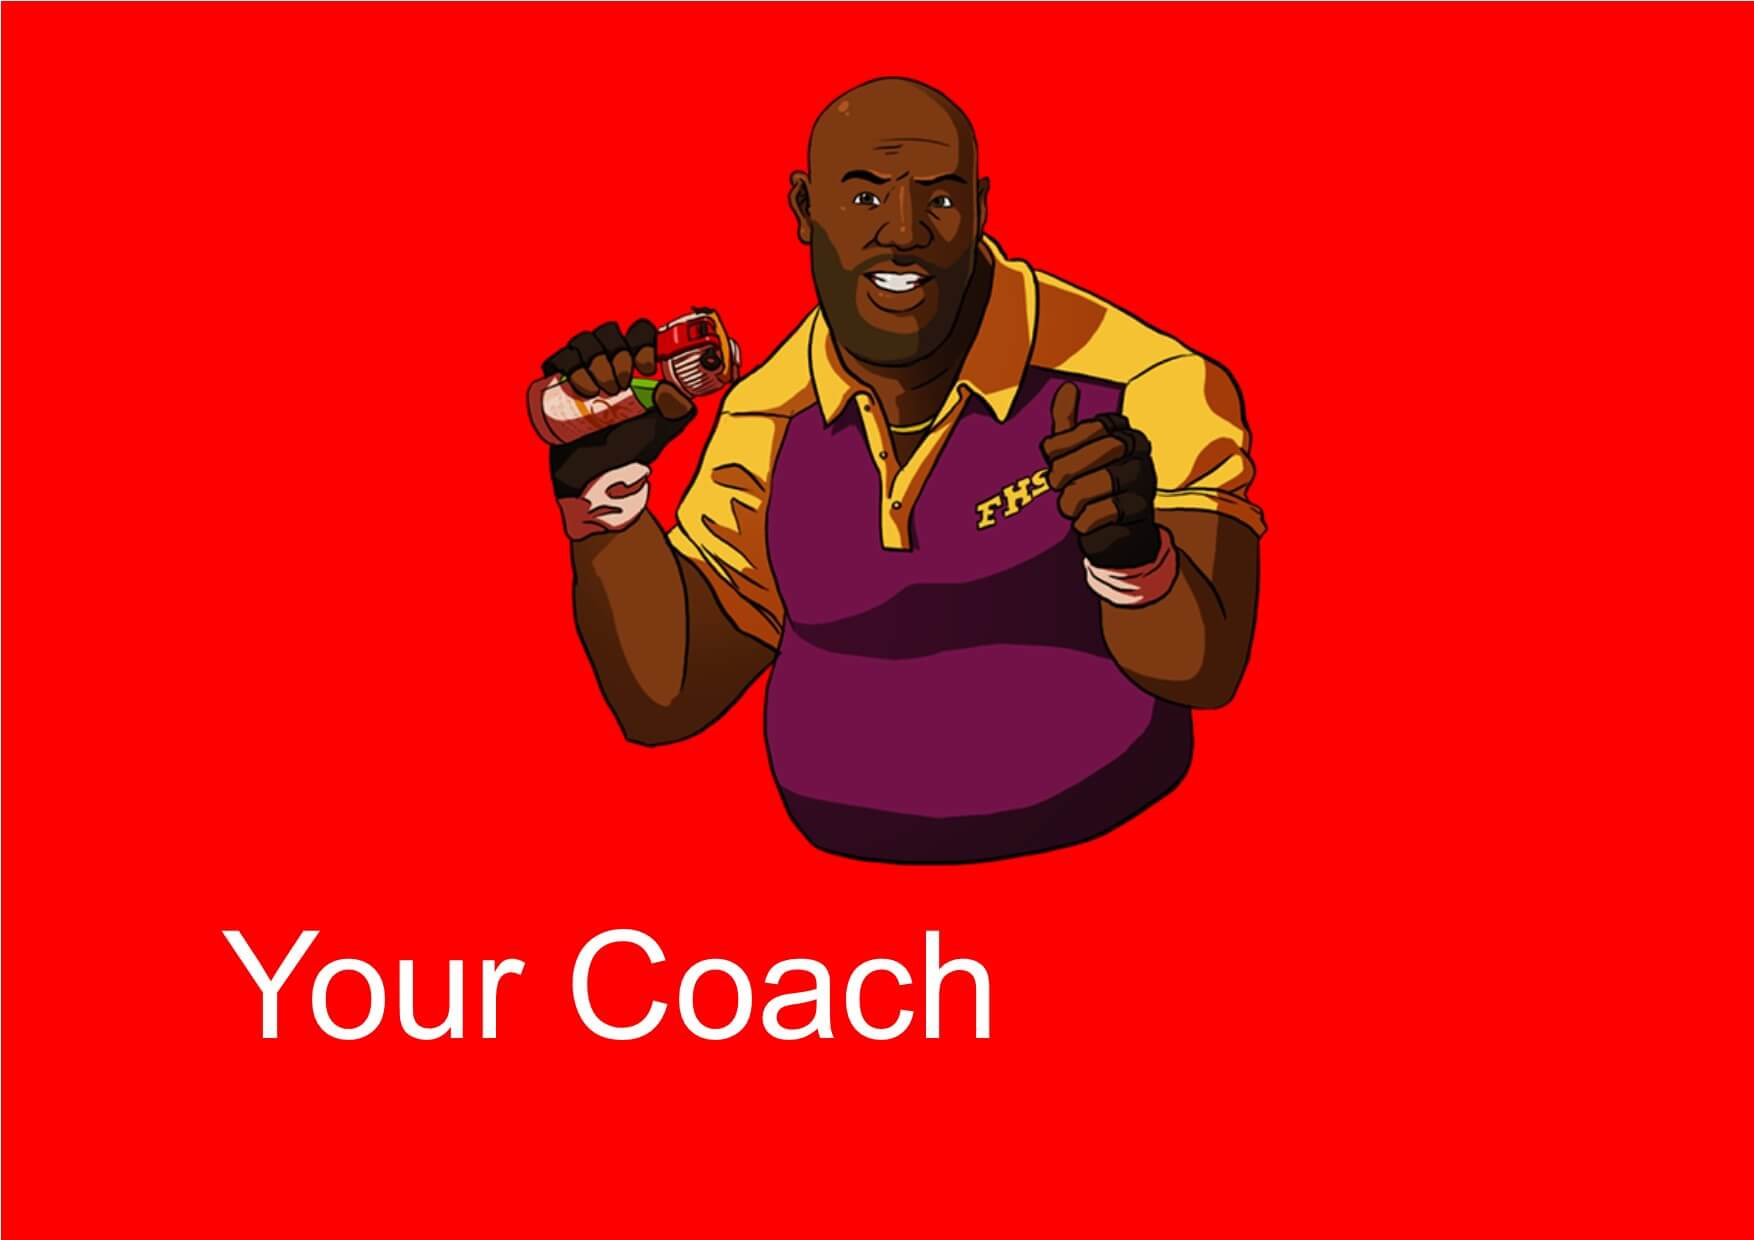 Your Coach